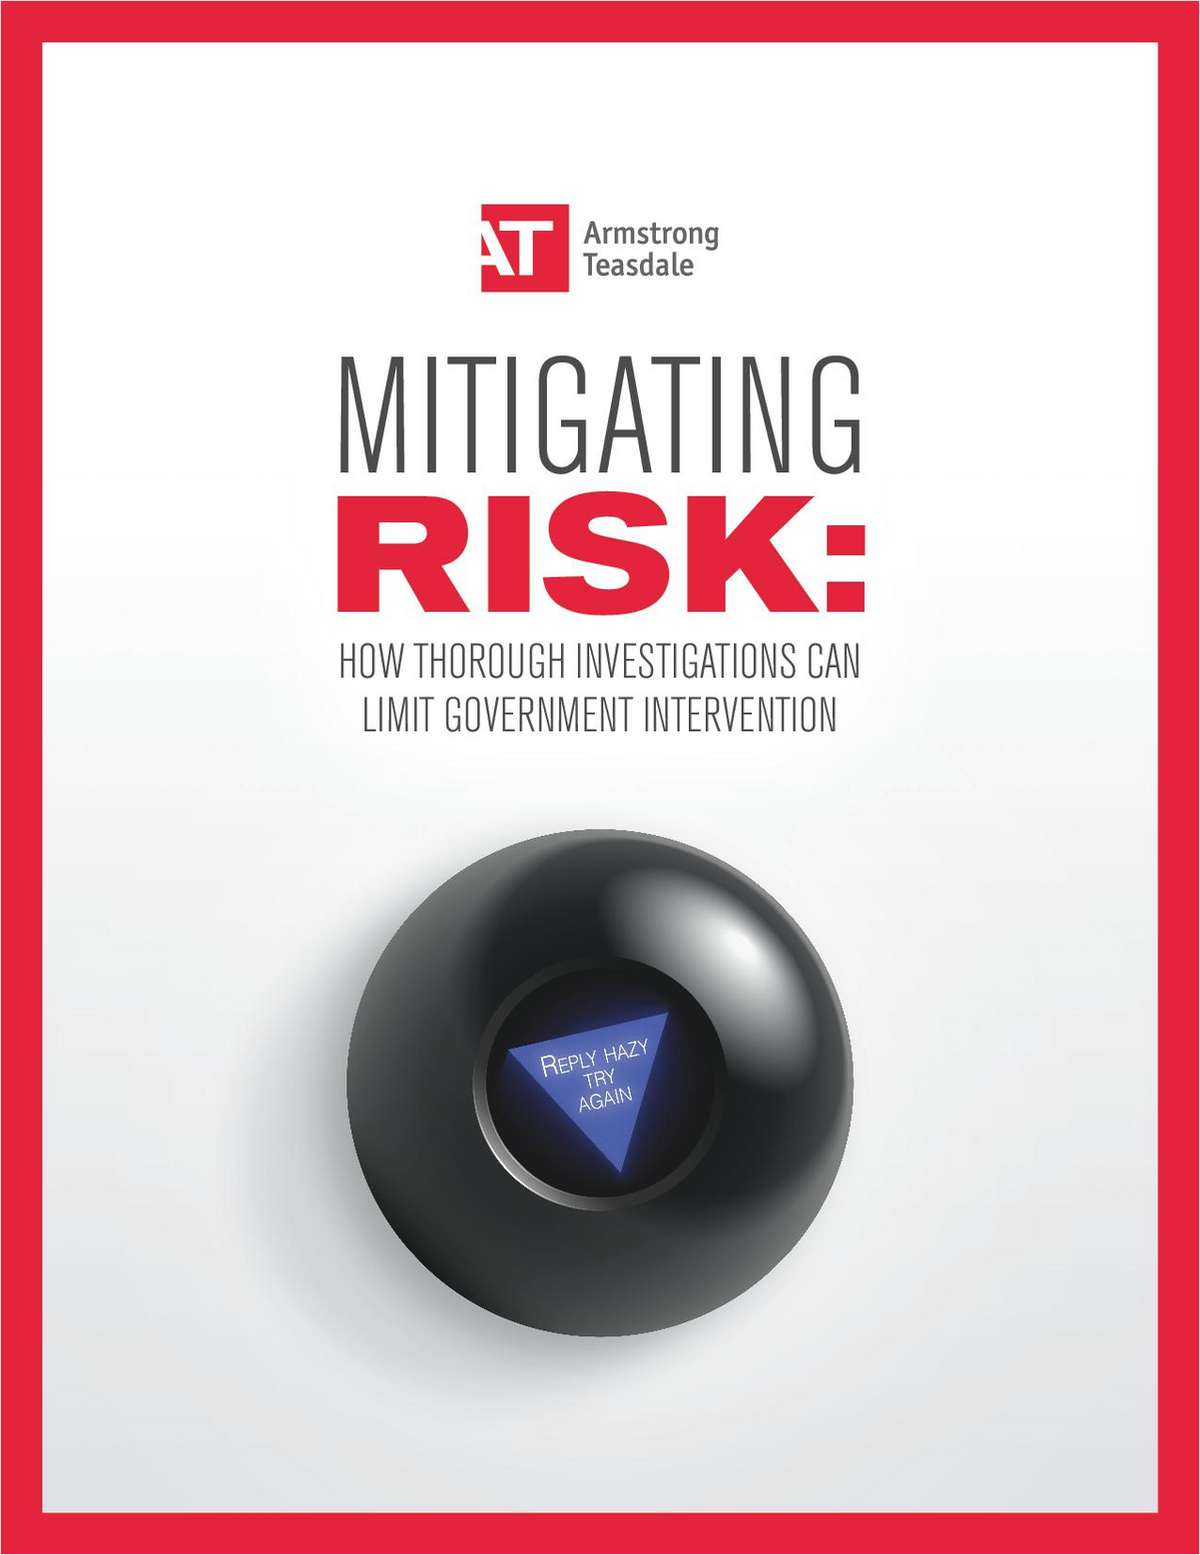 MITIGATING RISK: How Thorough Investigations Can Limit Government Intervention